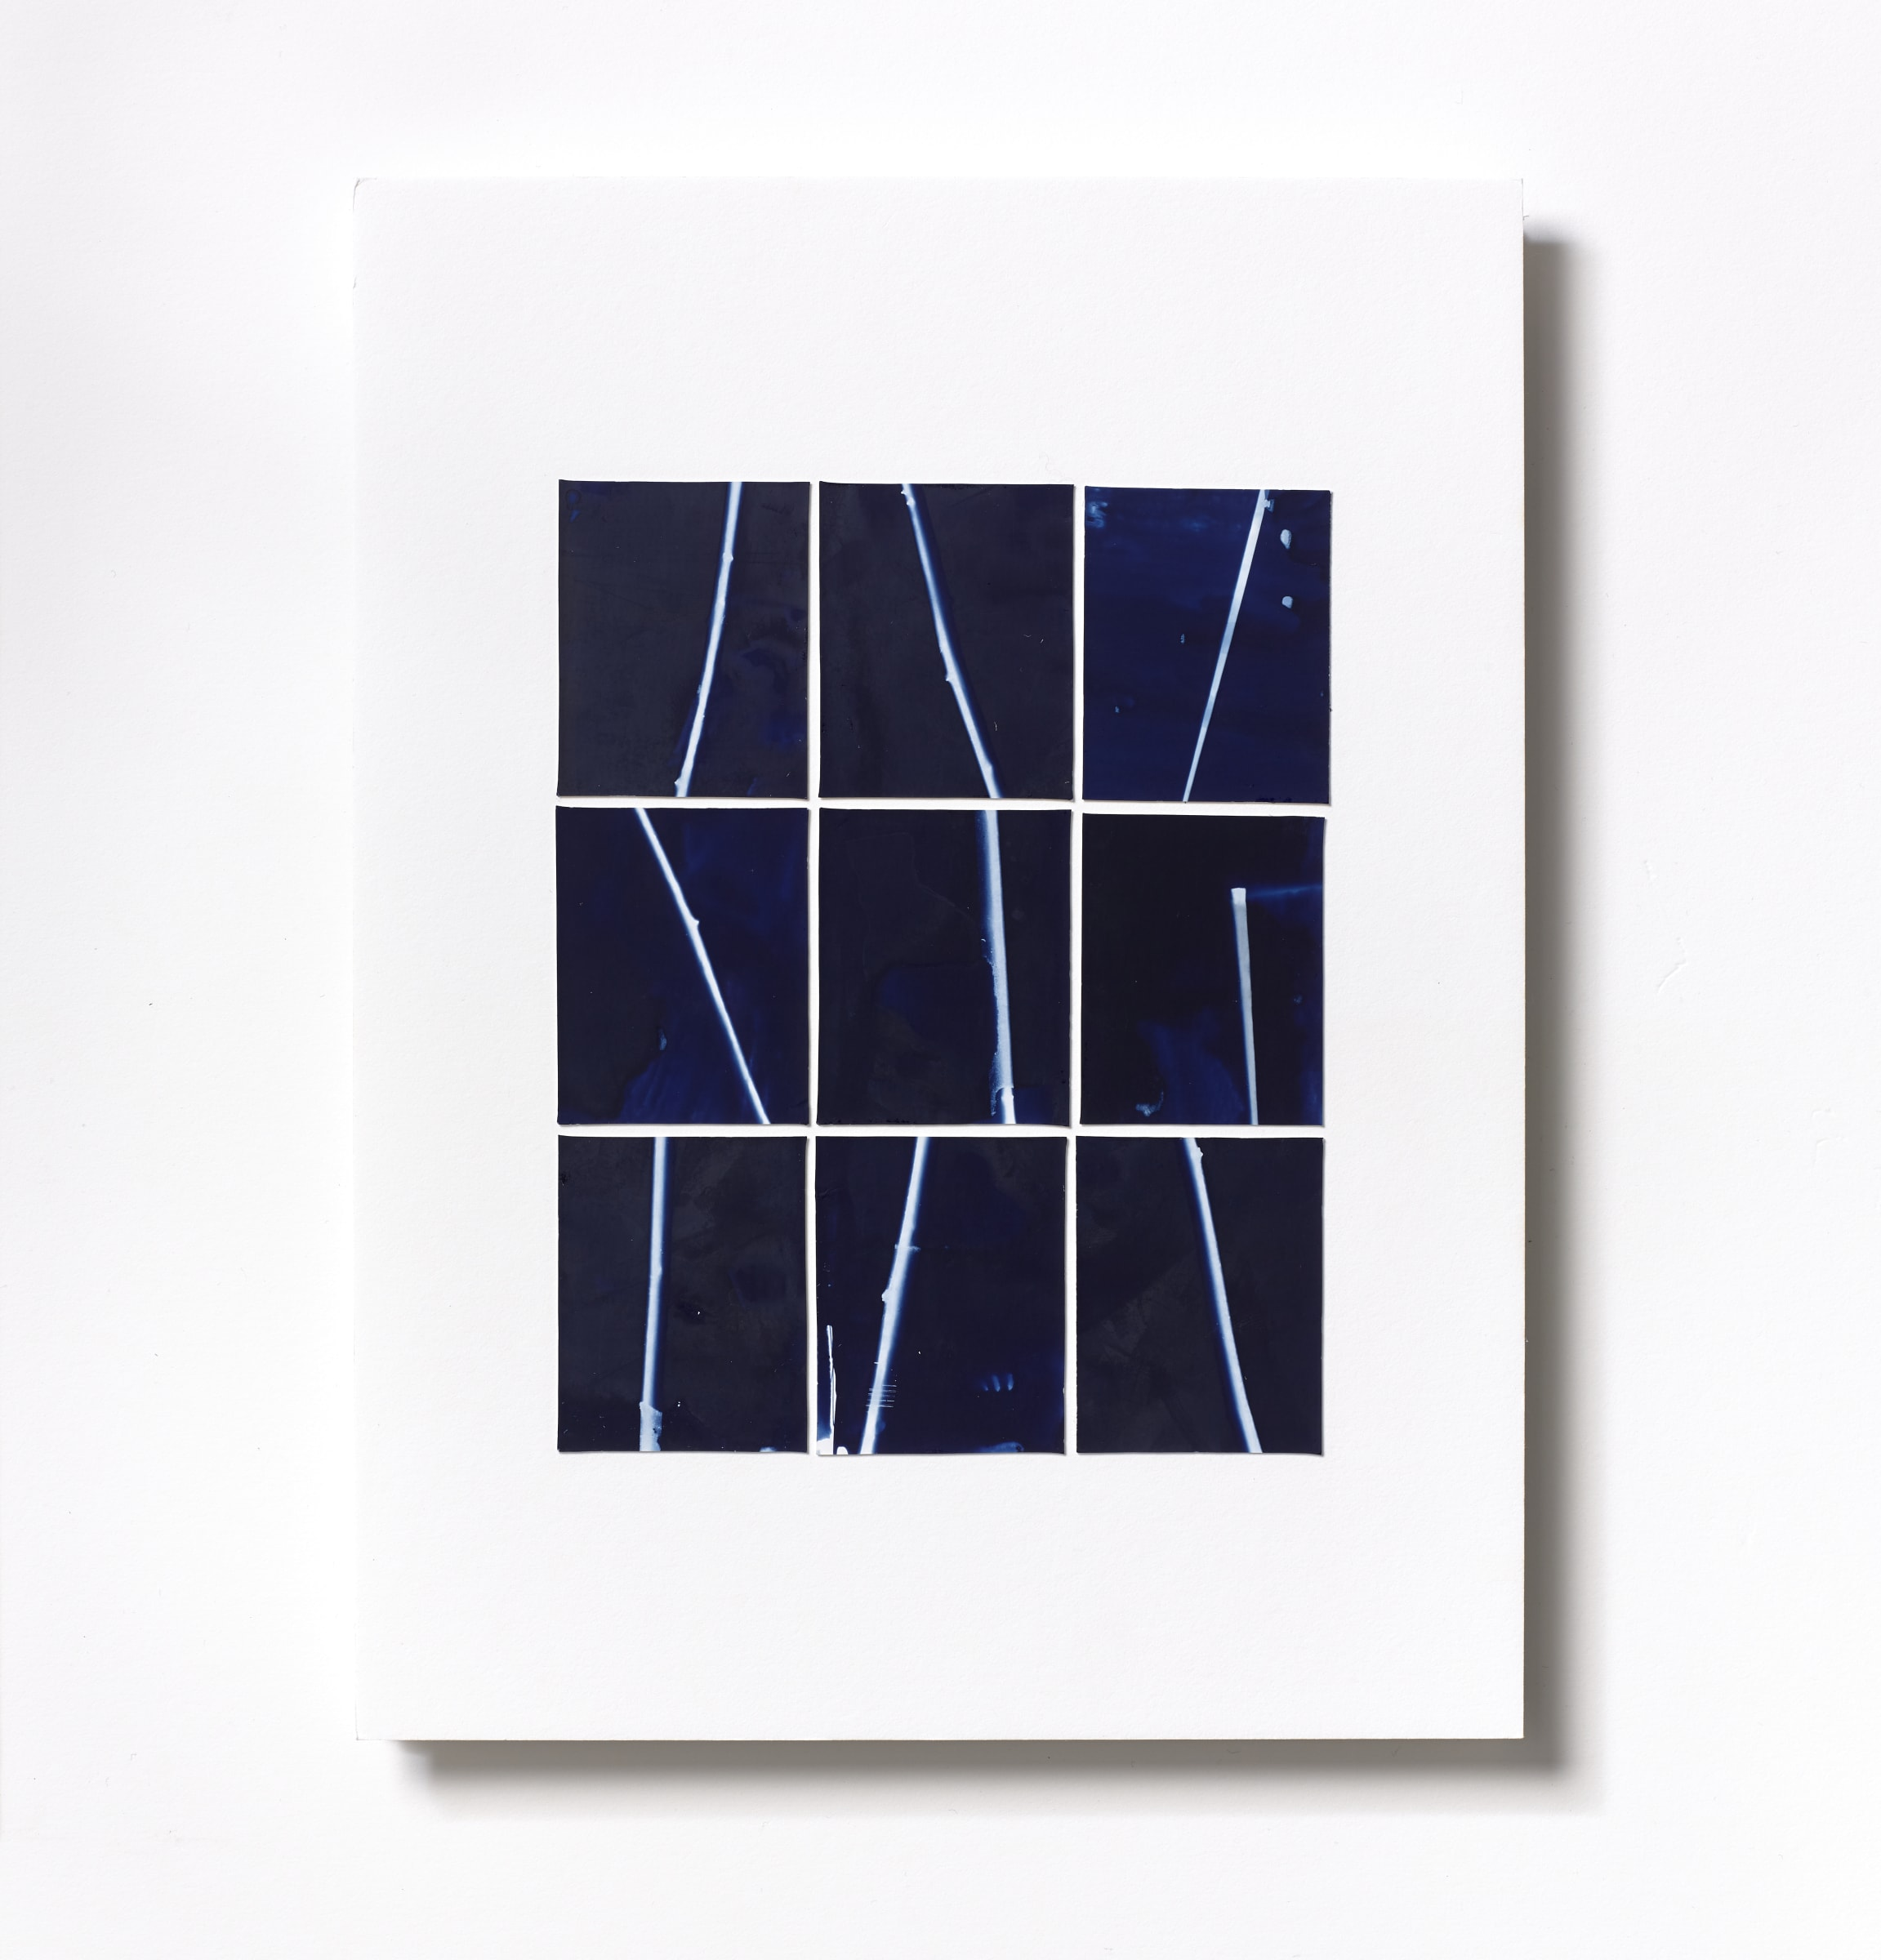 """<span class=""""link fancybox-details-link""""><a href=""""/content/feature/125/artworks572/"""">View Detail Page</a></span><div class=""""medium"""">Cyanotype Collage of nine hand-painted 2 7/8"""" x 1 7/8"""" cyanotype photograms on a 12 x 9 inch 8-ply museum board<br /> Print only<br /> Unique</div> <div class=""""dimensions"""">30.5 x 22.9 cm<br /> 12 x 9 in</div>"""